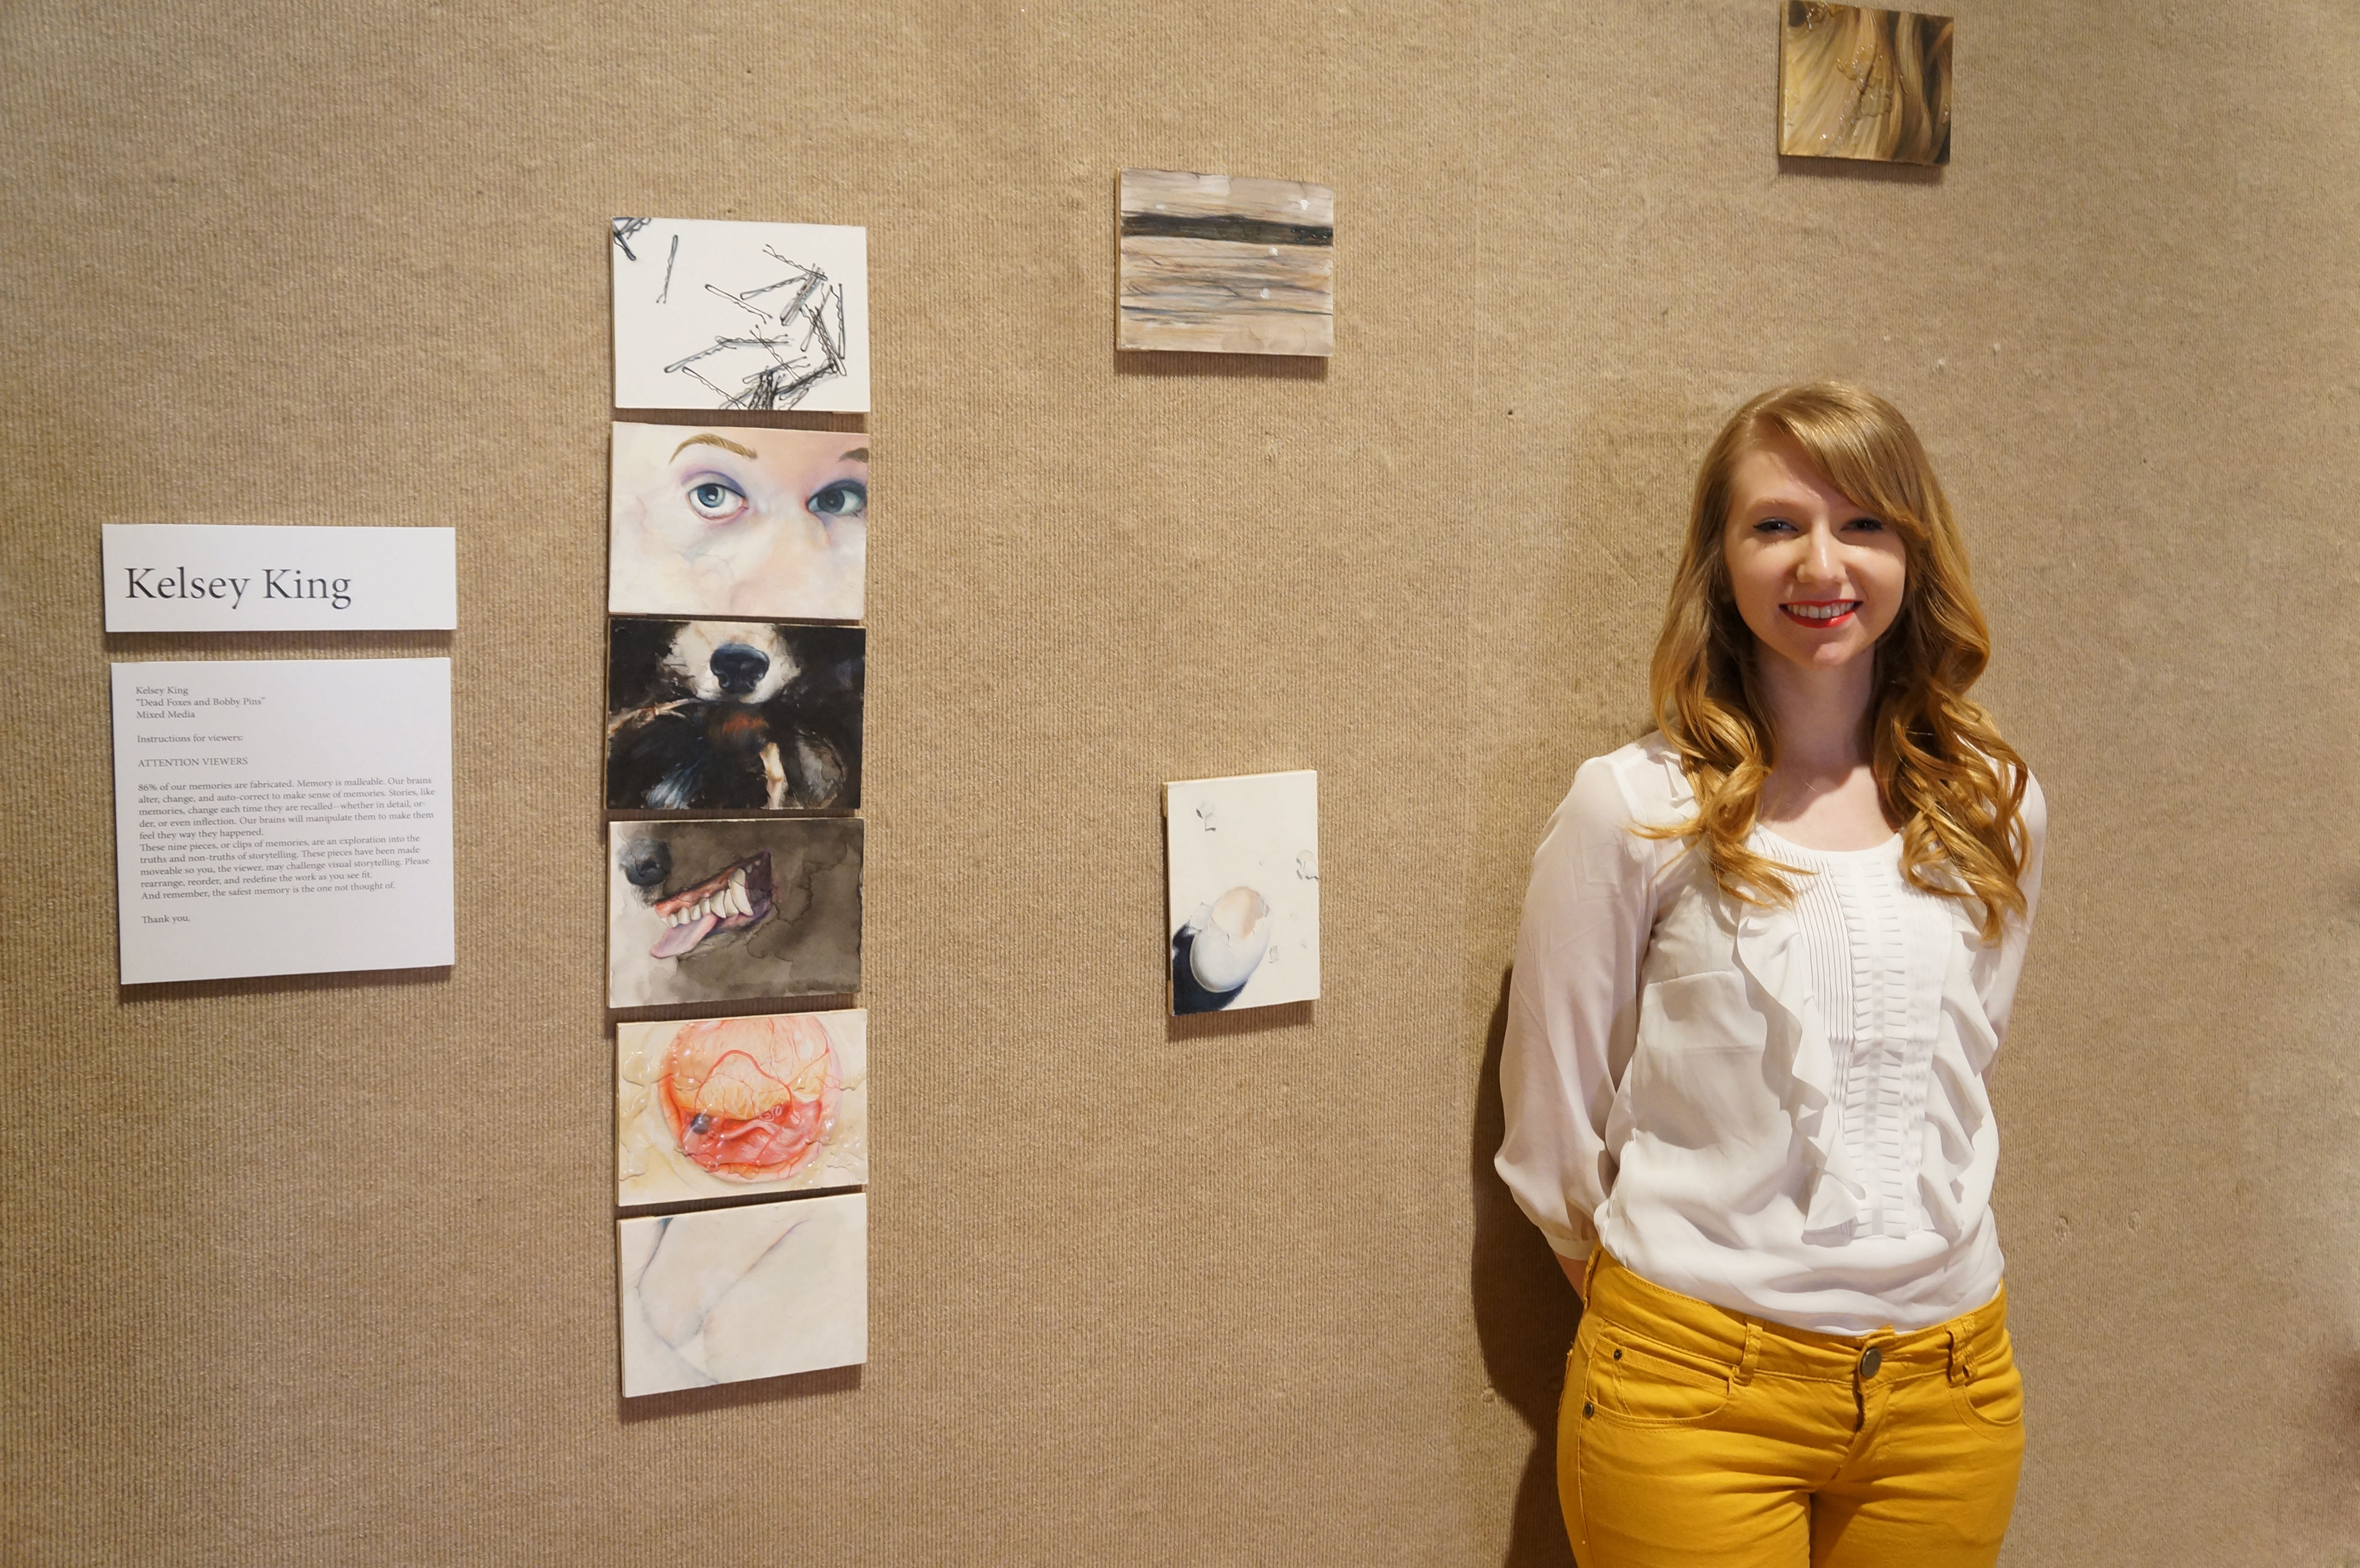 Kelsey_King_at_Payne_Gallery_Senior_Show (1).jpg